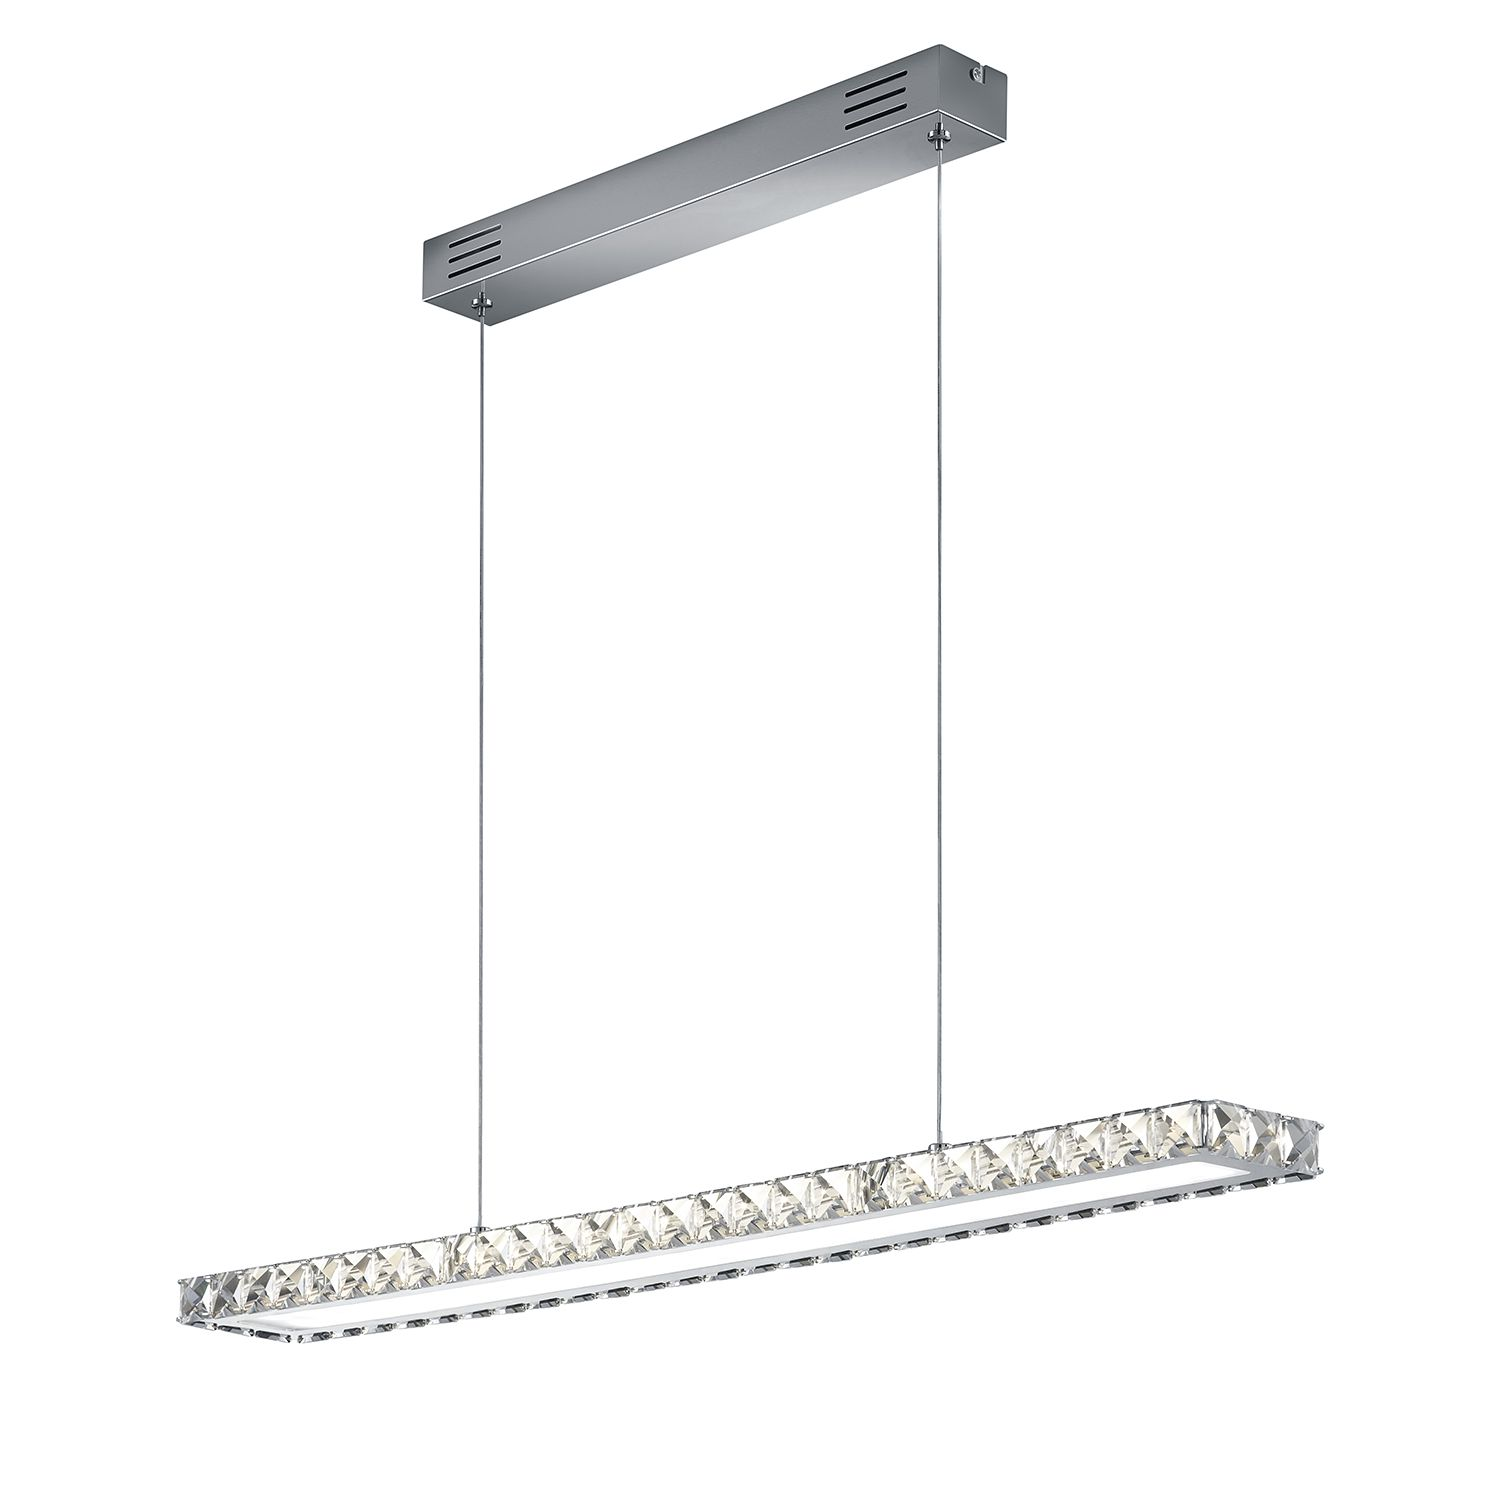 LED-Pendelleuchte Grenoble ● Metall / Glas ● 1-flammig- Trio A+